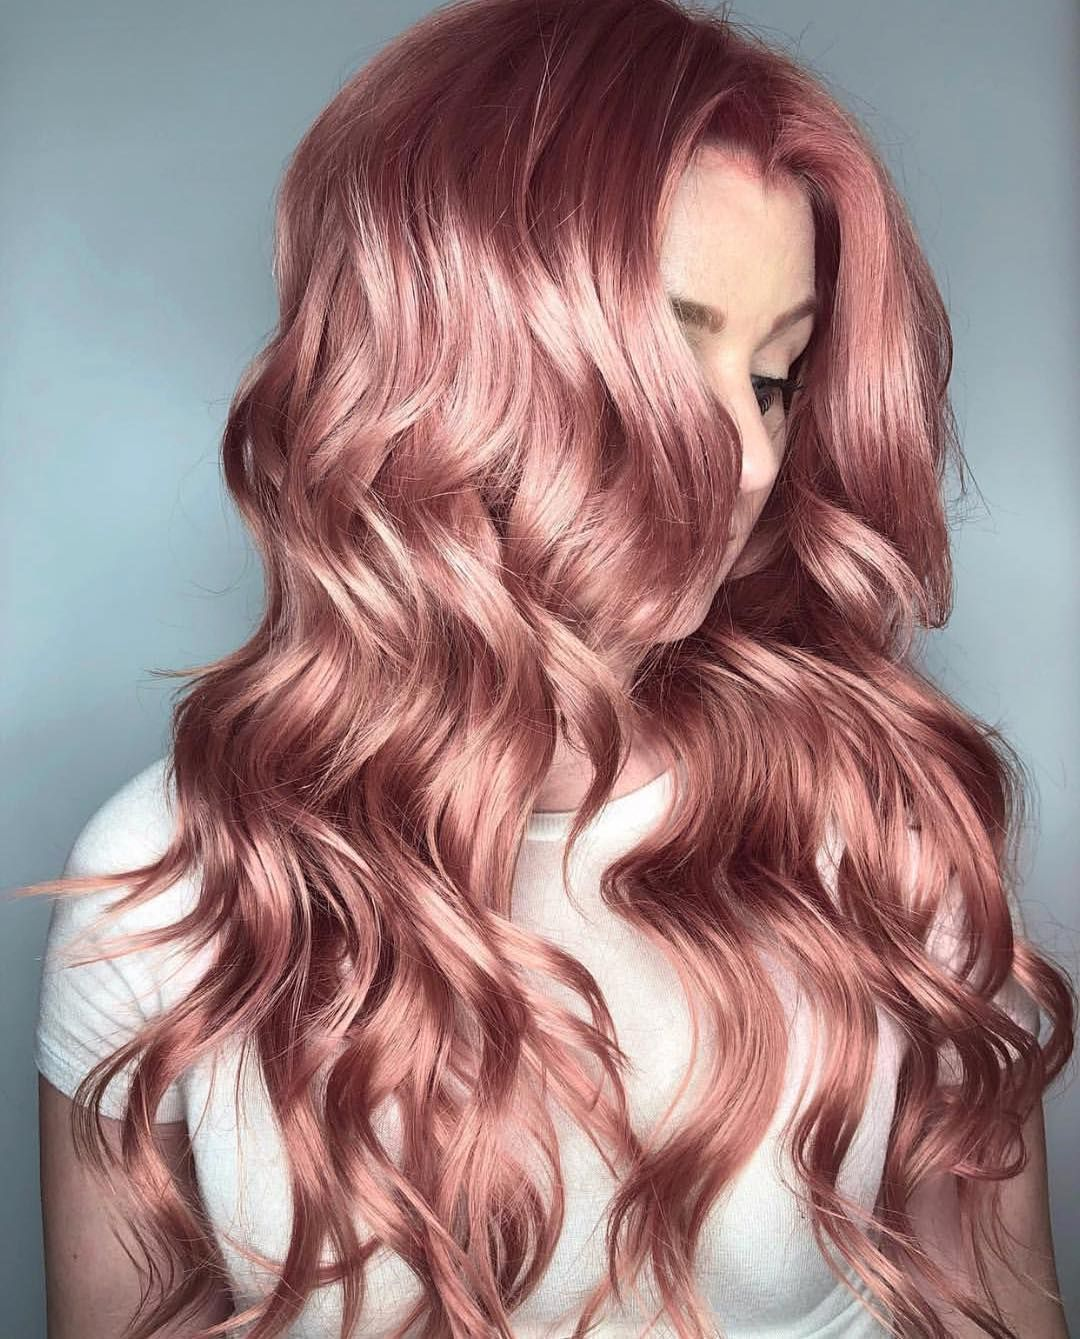 Ready To Pull The Trigger And Dye Your Hair That Pretty Pink Hue All Over Your Instagram Feed We Asked An Ex Long Hair Styles Hair Styles Hair Color Rose Gold